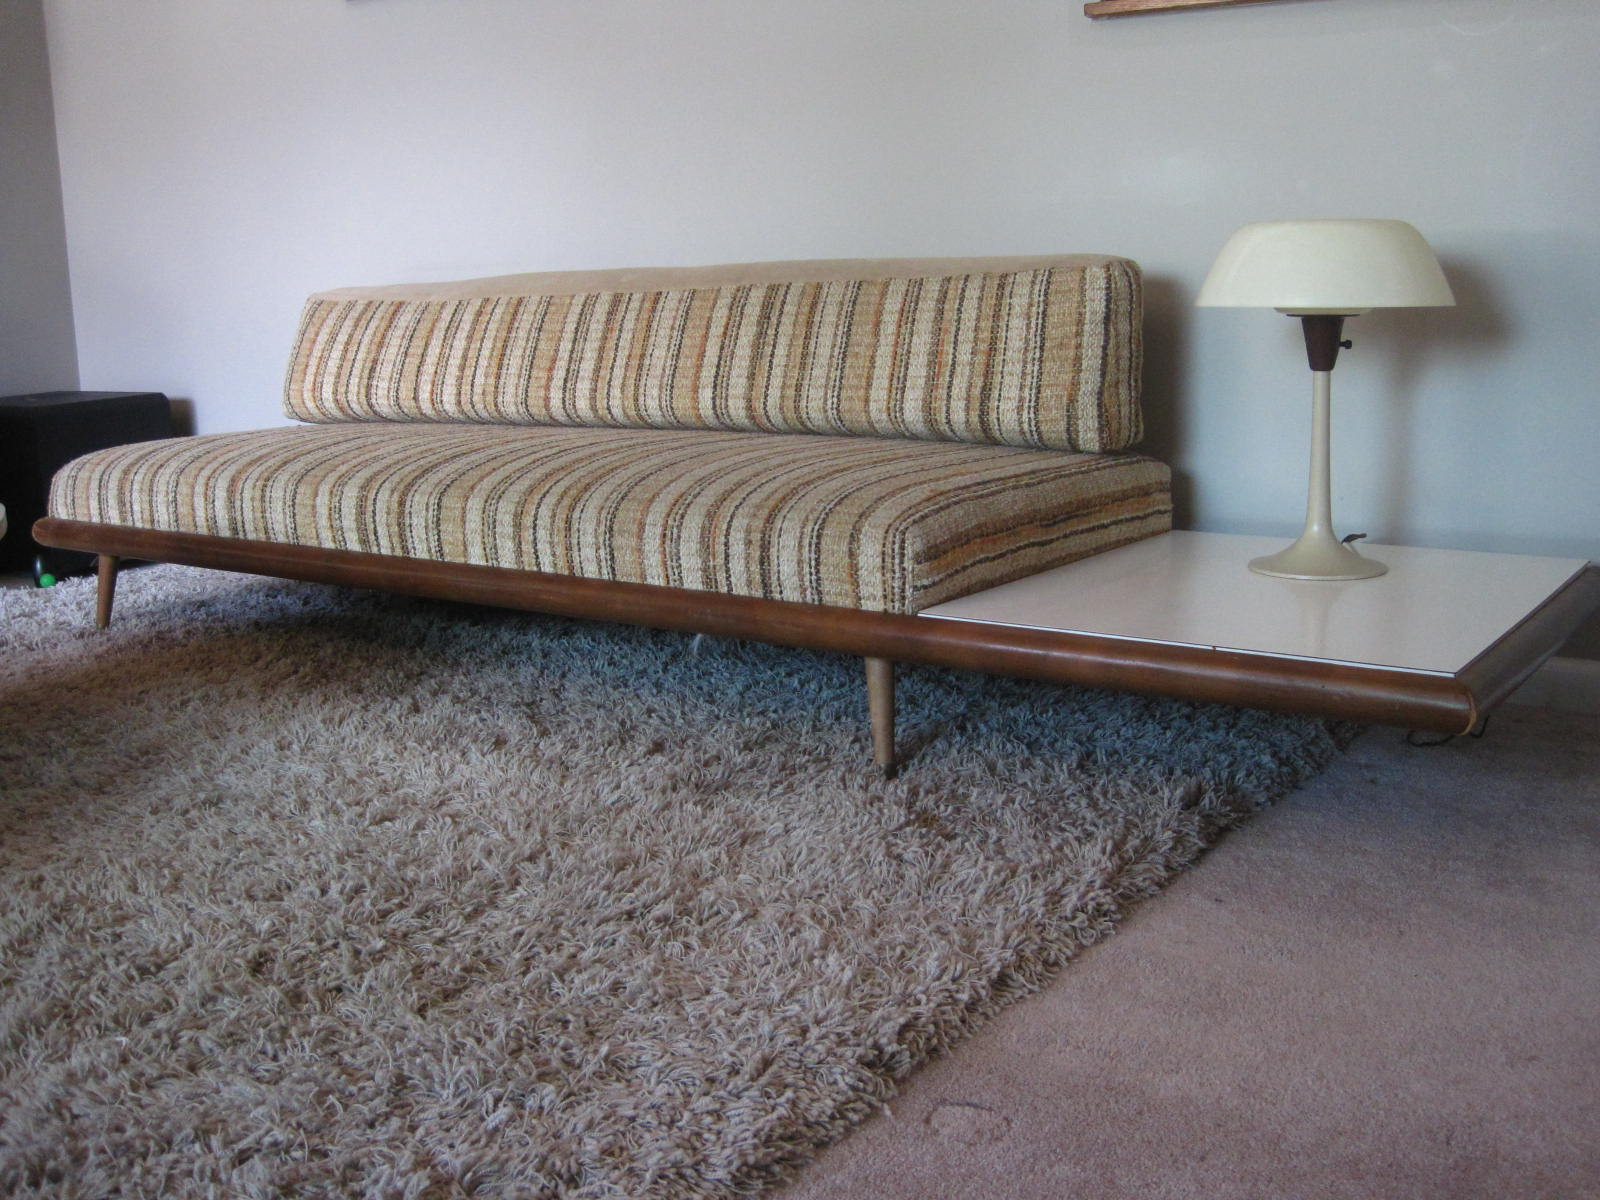 Rhan Vintage. Mid Century Modern Blog.: The Couch Dilemma. Solved For Now.